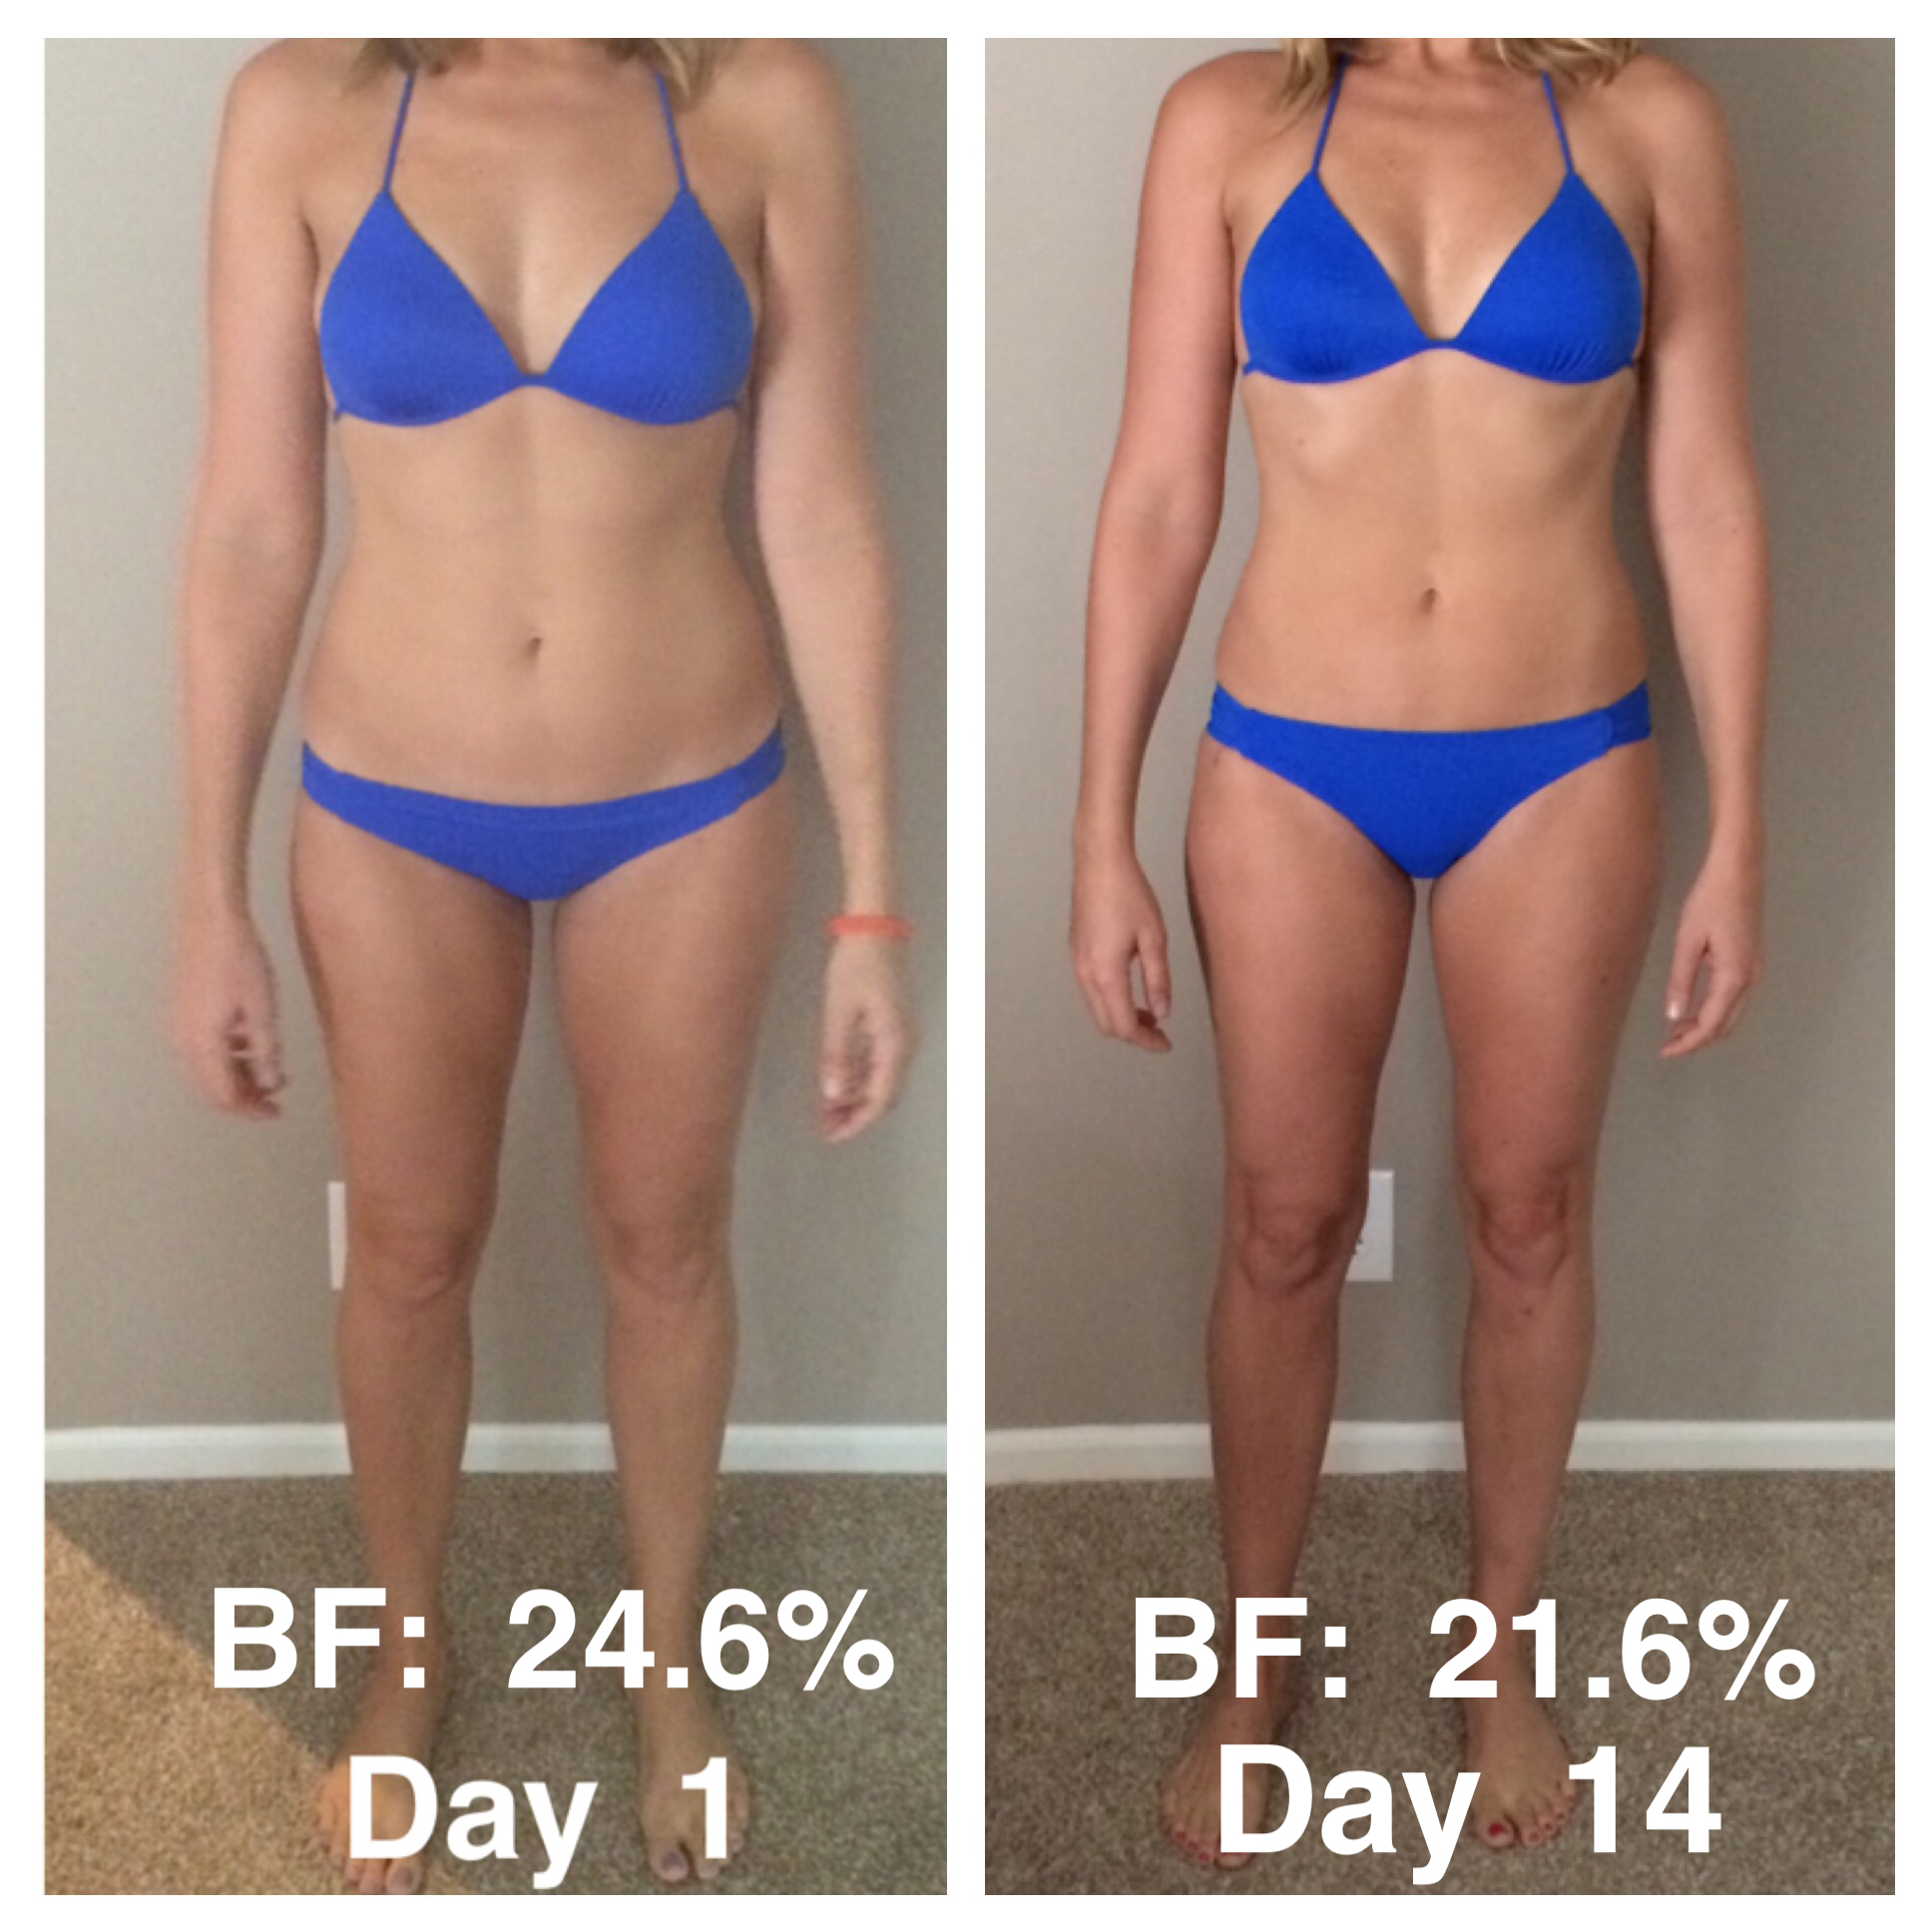 Medi weight loss peoria il reviews